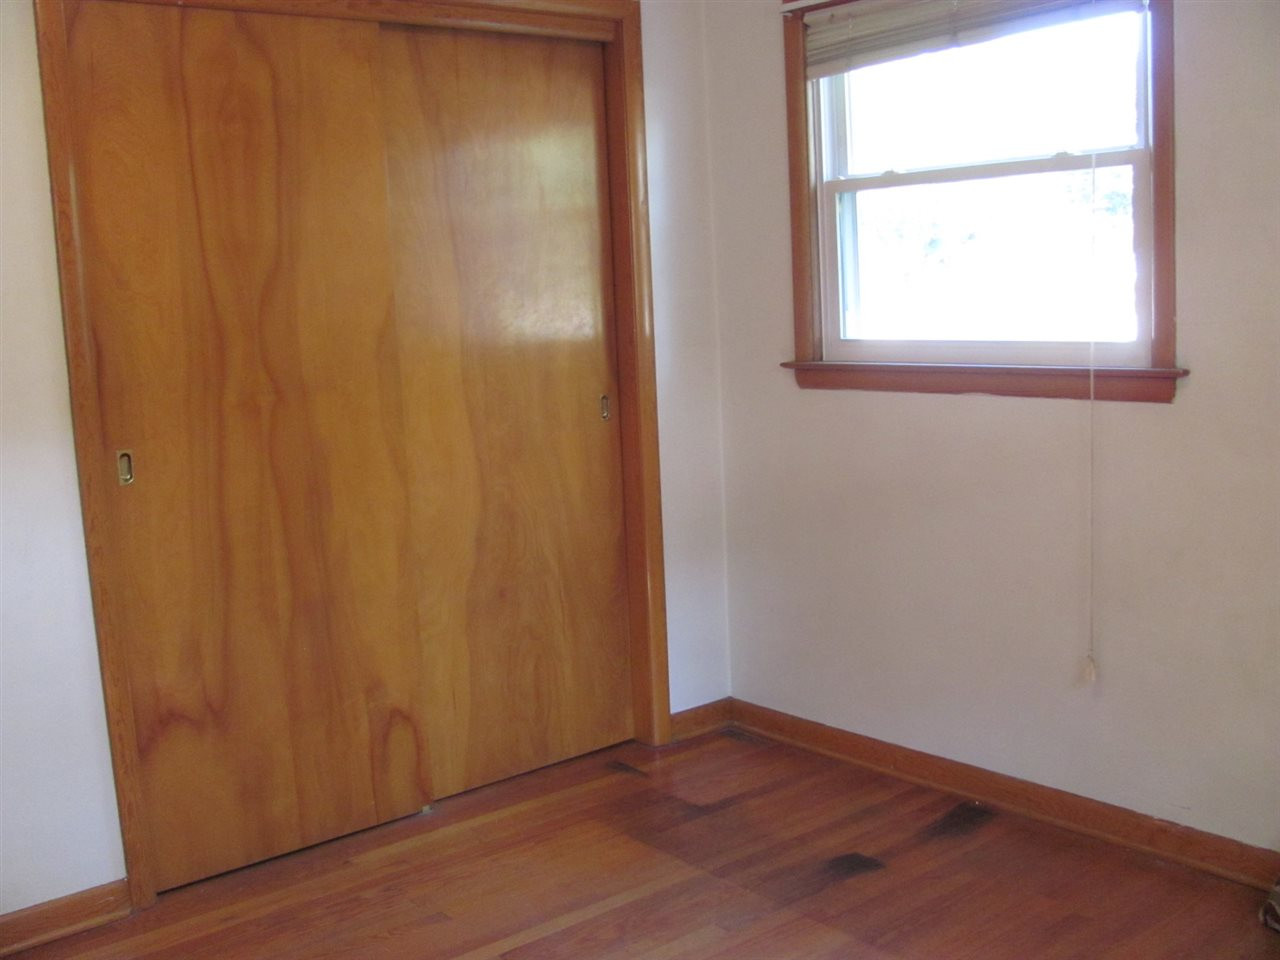 hardwood flooring in rockford il of 2331 25th st rockford il 61108 realestate com with is2n2c19sz5e7n0000000000